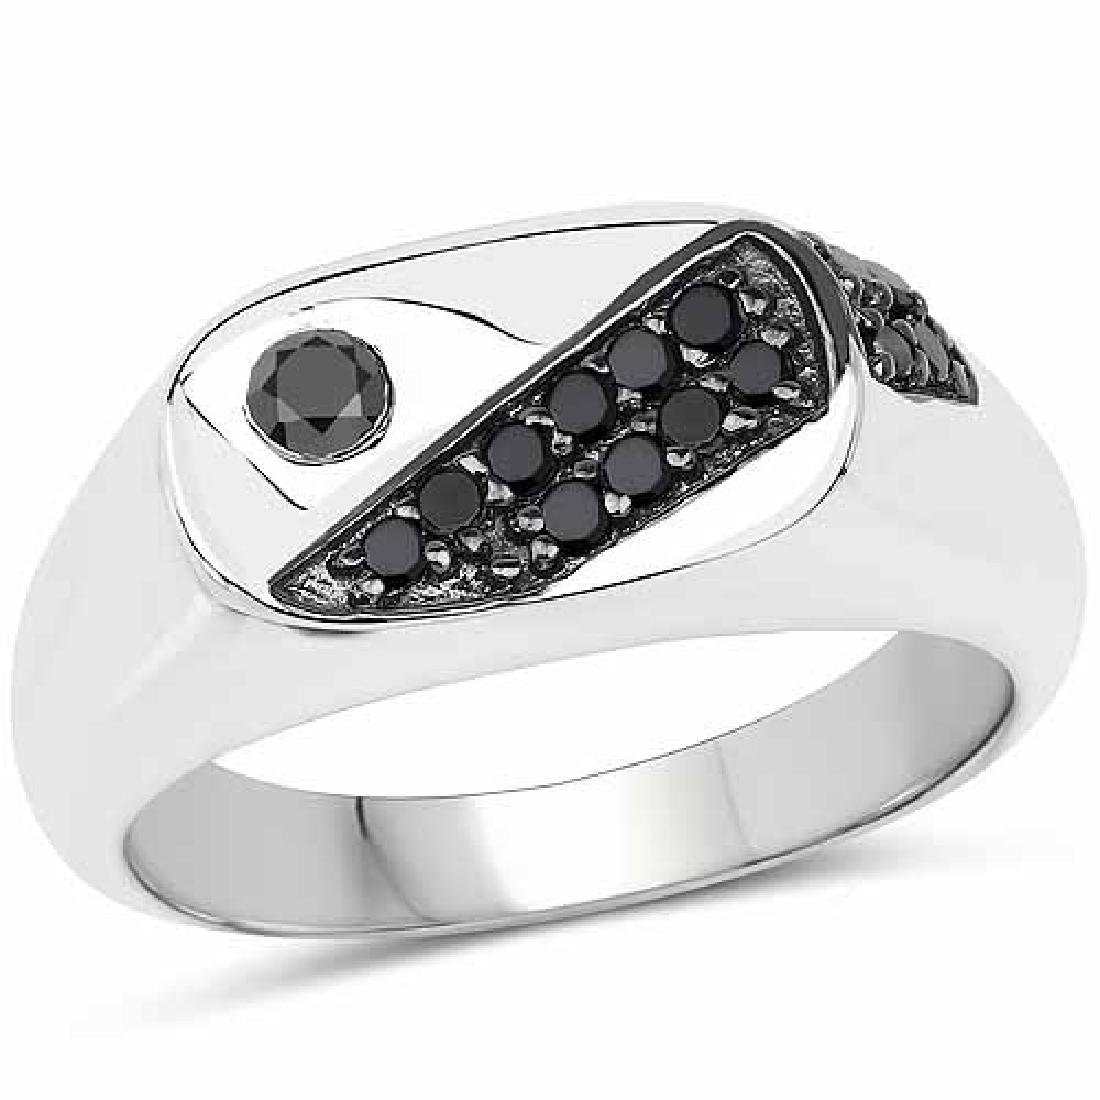 0.31 Carat Genuine Black Diamond .925 Sterling Silver R